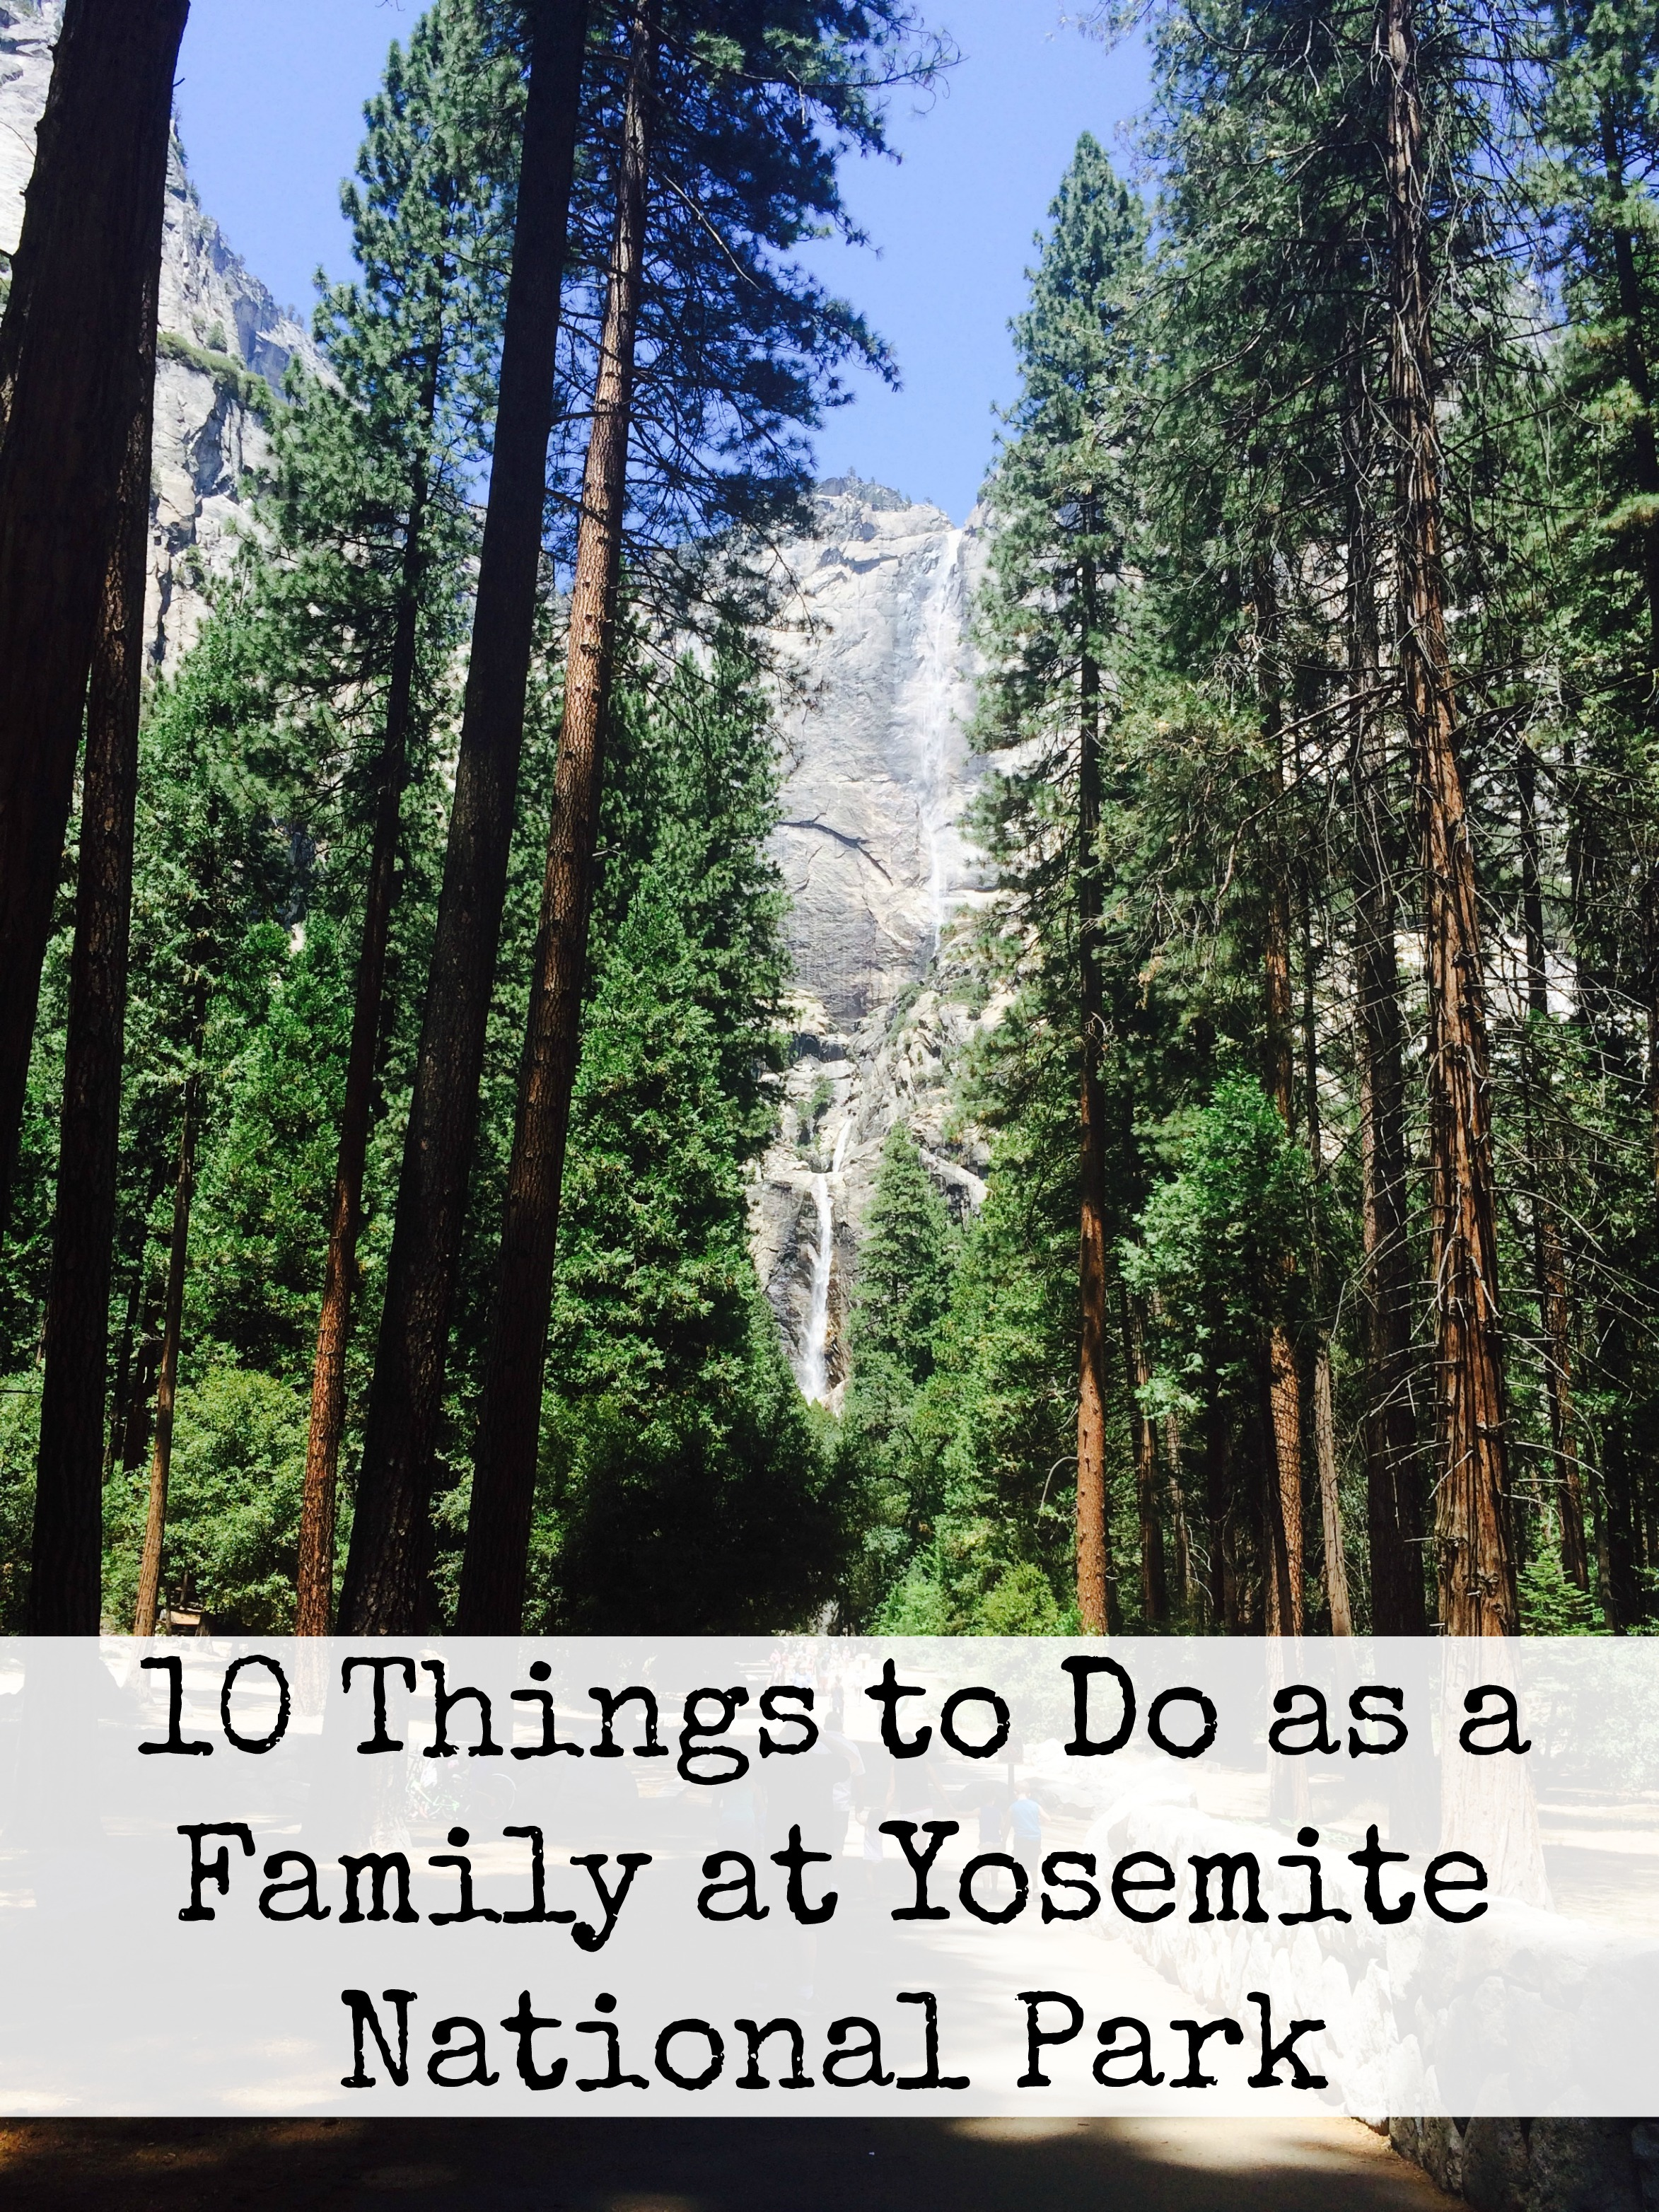 10 Things to Do as a Family at Yosemite National Park